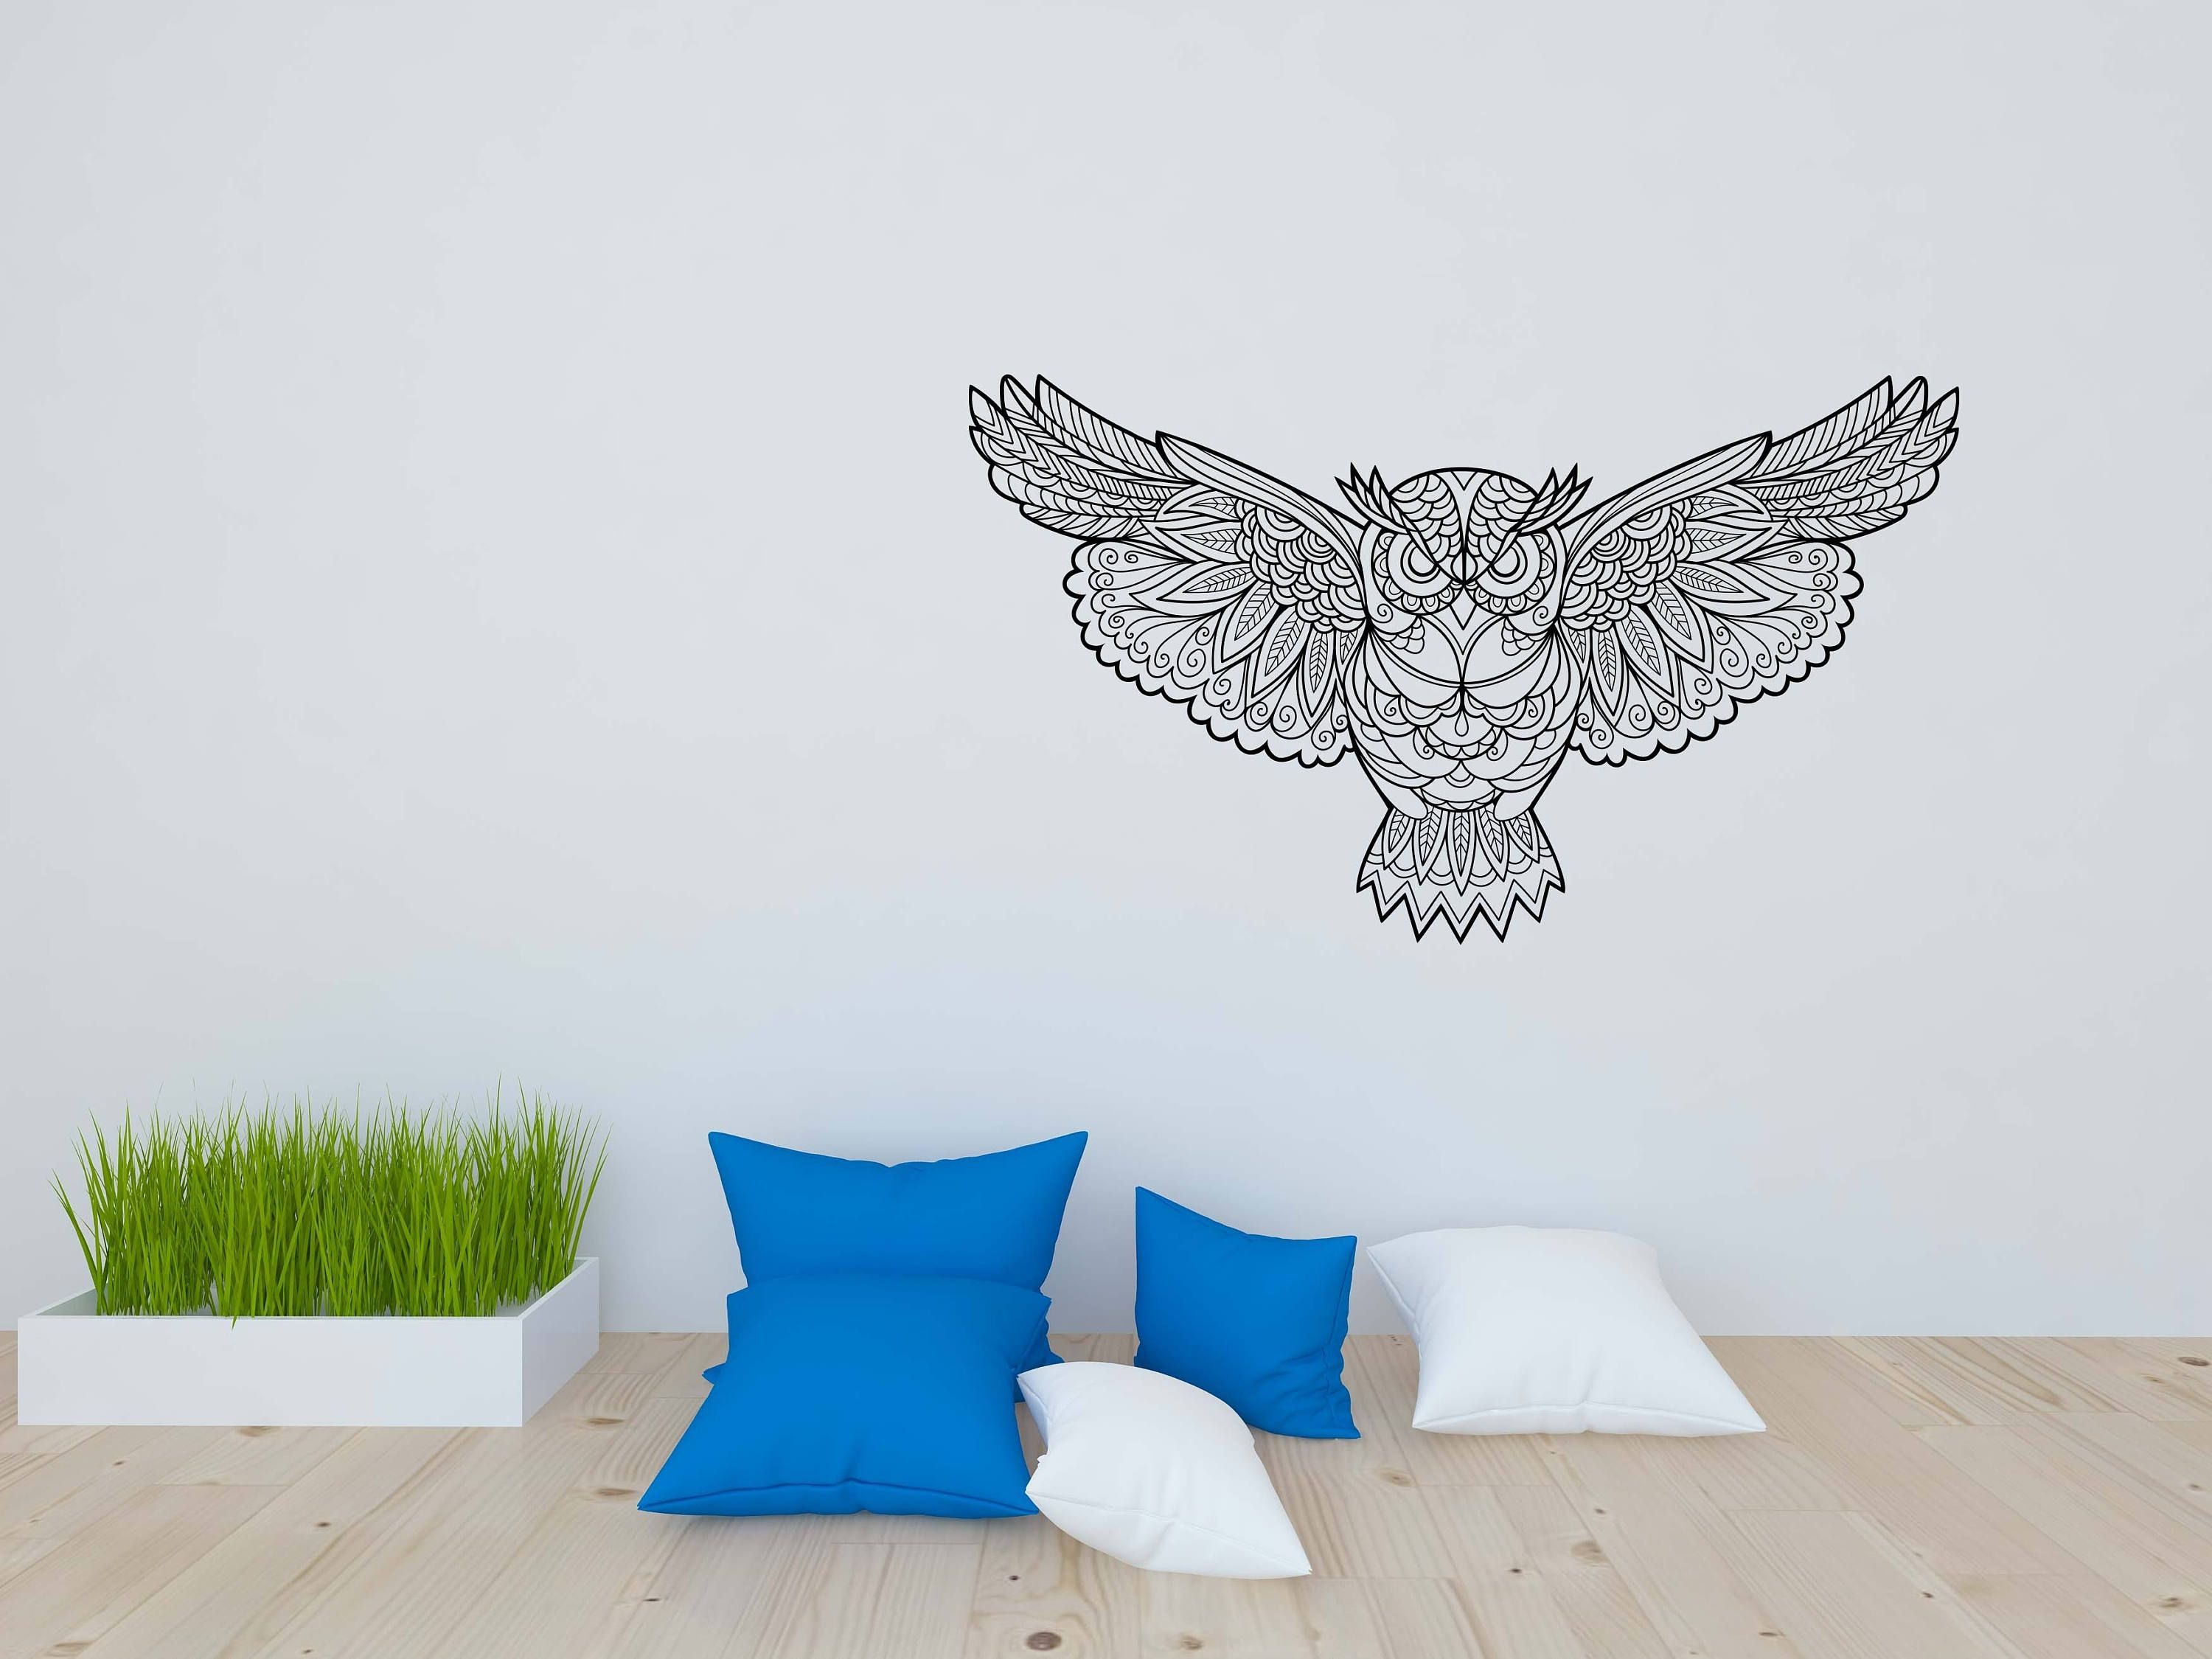 Coloring Book Wallpaper Peel and stick For Kids and Adults